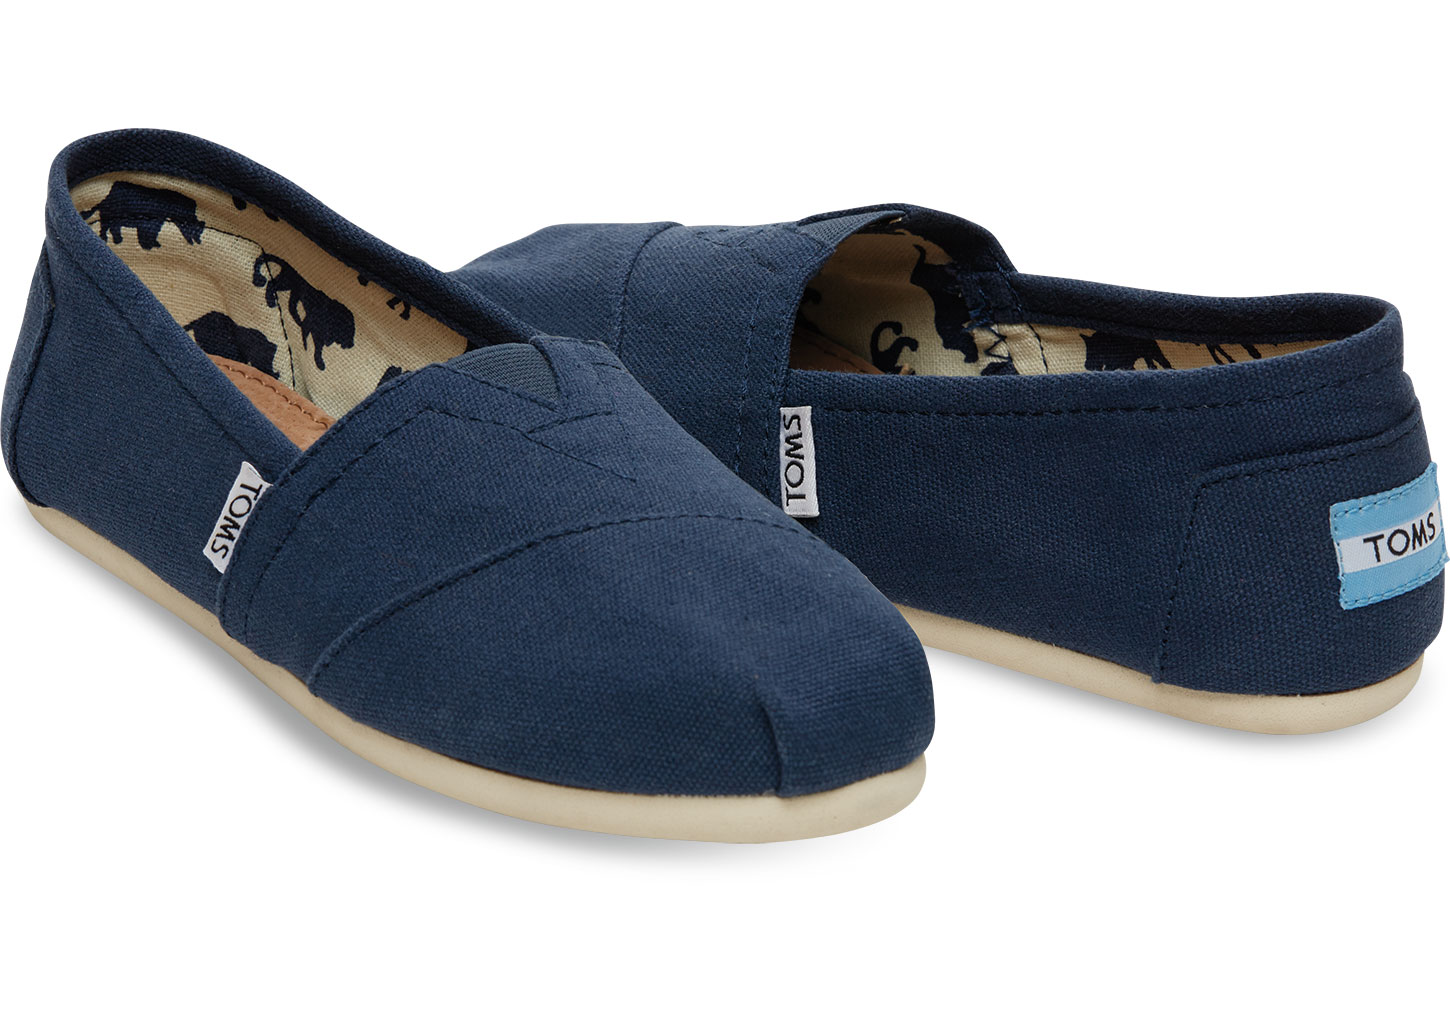 TOMS JUST LAUNCHED A HUGE VEGAN SPRING